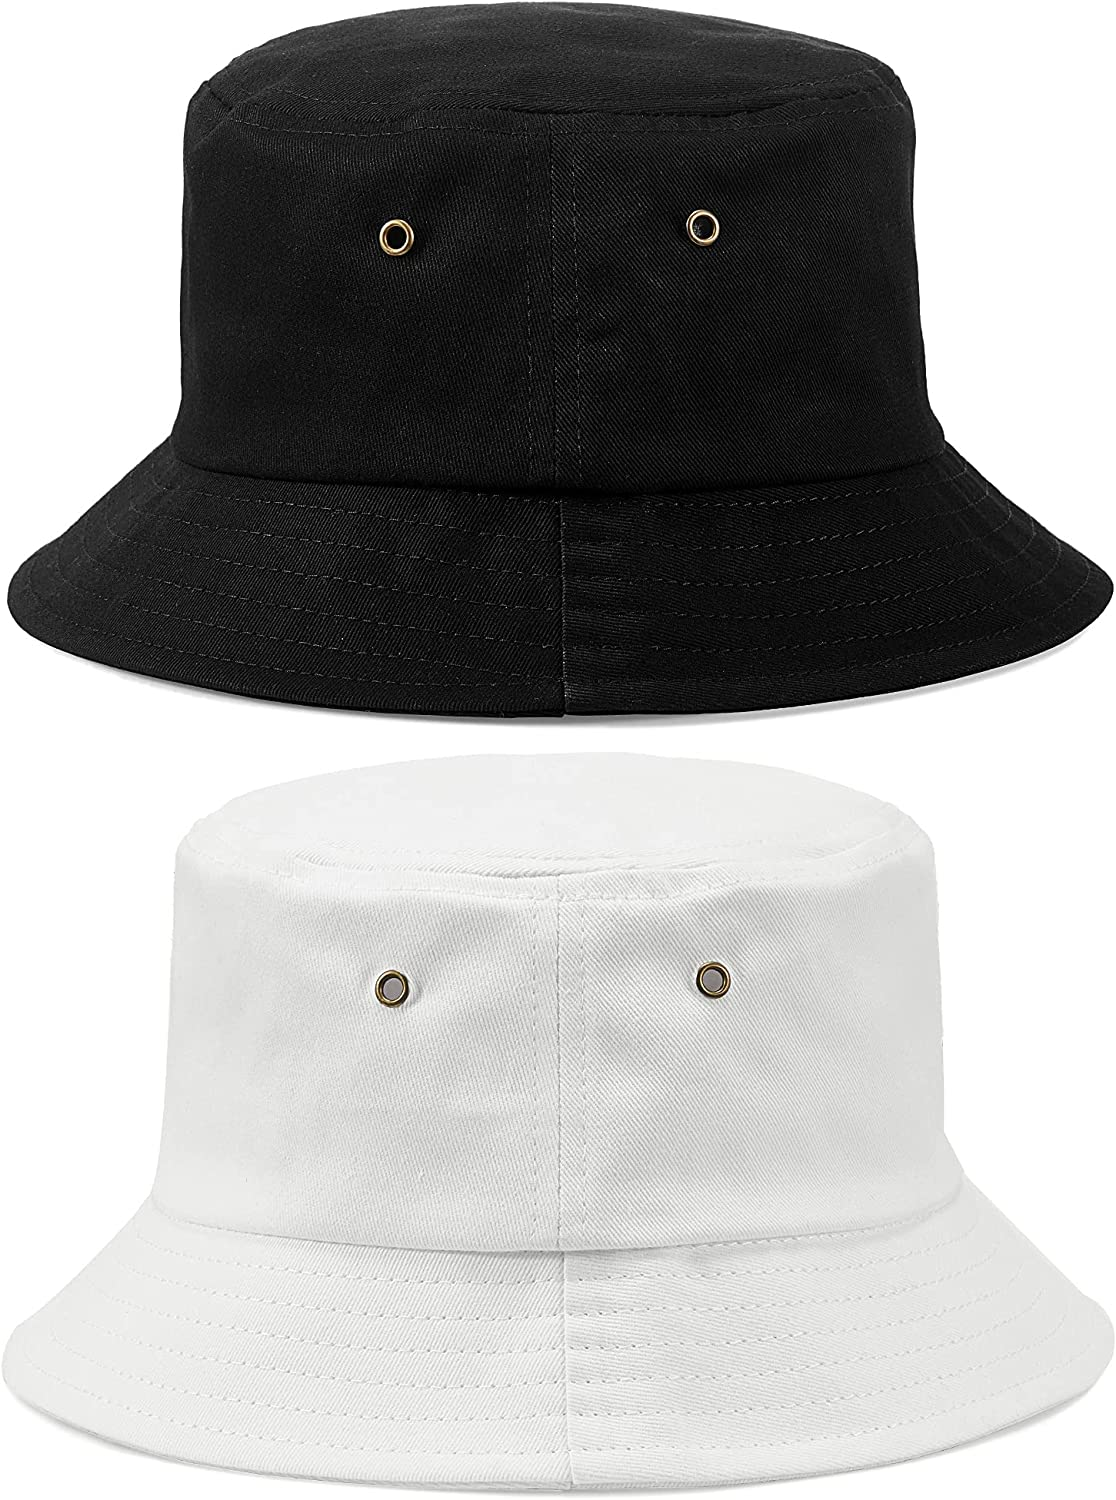 2 Pieces Youth Kid Bucket Hat Travel Bucket Hat Summer Beach Casual Outdoor Fishing Hiking Hat for Boy Girl